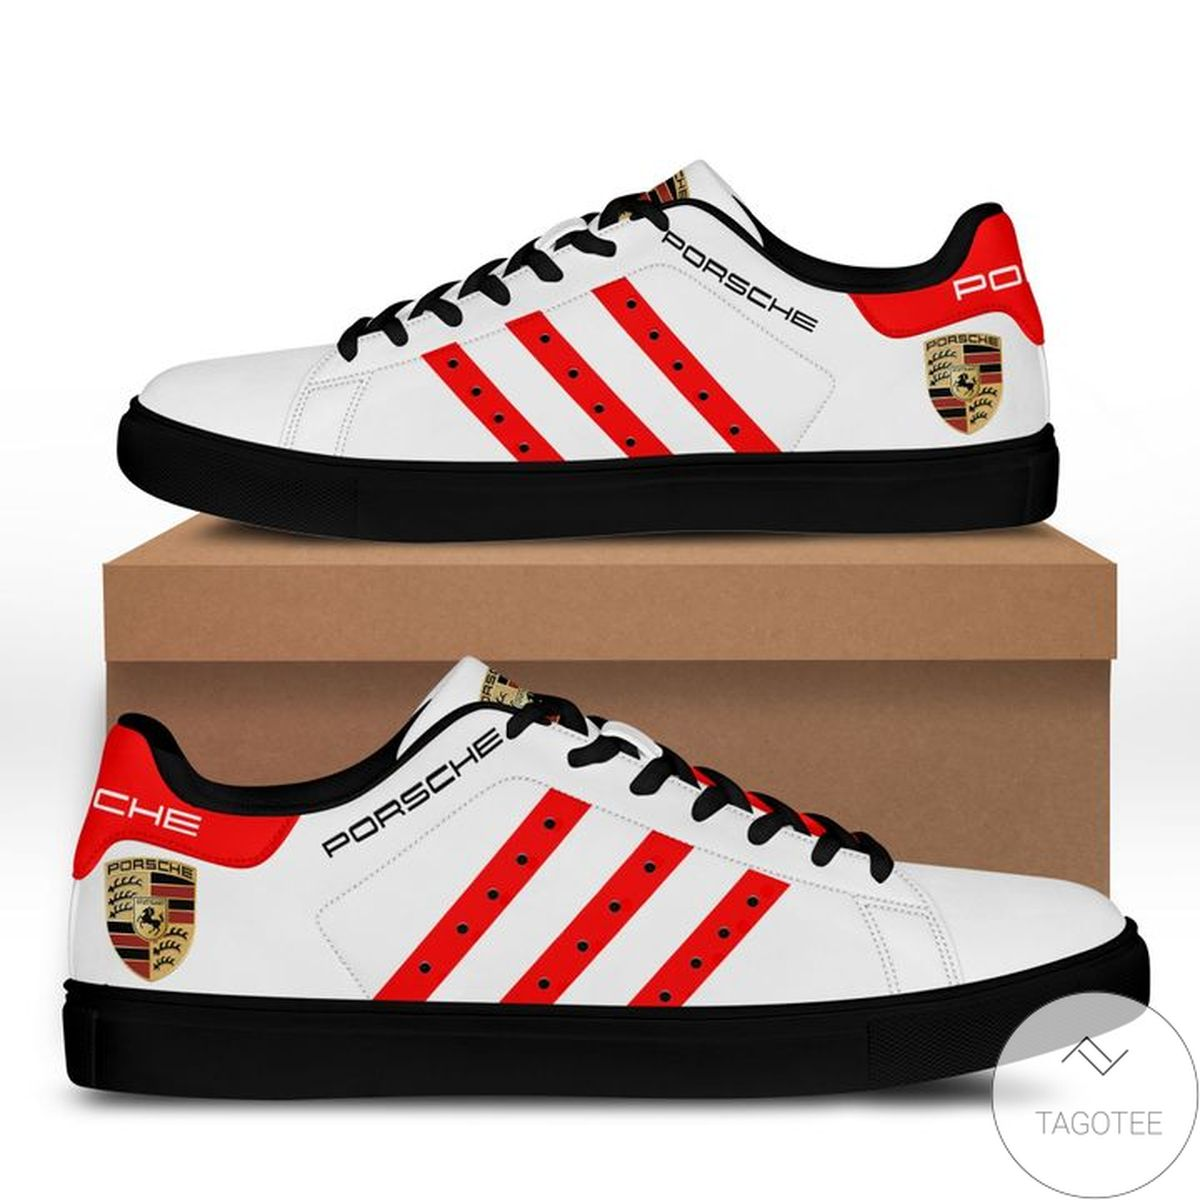 Only For Fan Porsche White Red Stan Smith Shoes